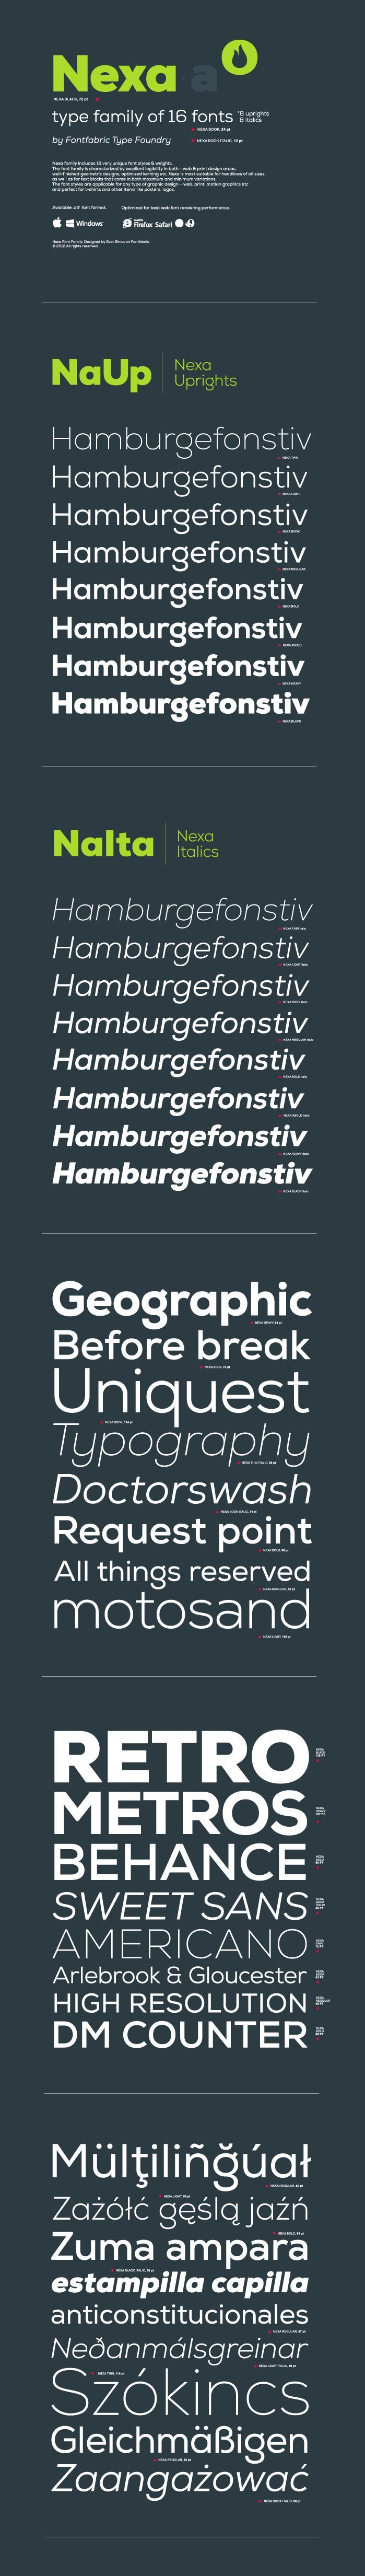 Nexa Font Free Nexa family includes 16 very unique font styles & weights. The font family is characterized by excellent legibility in both – ...